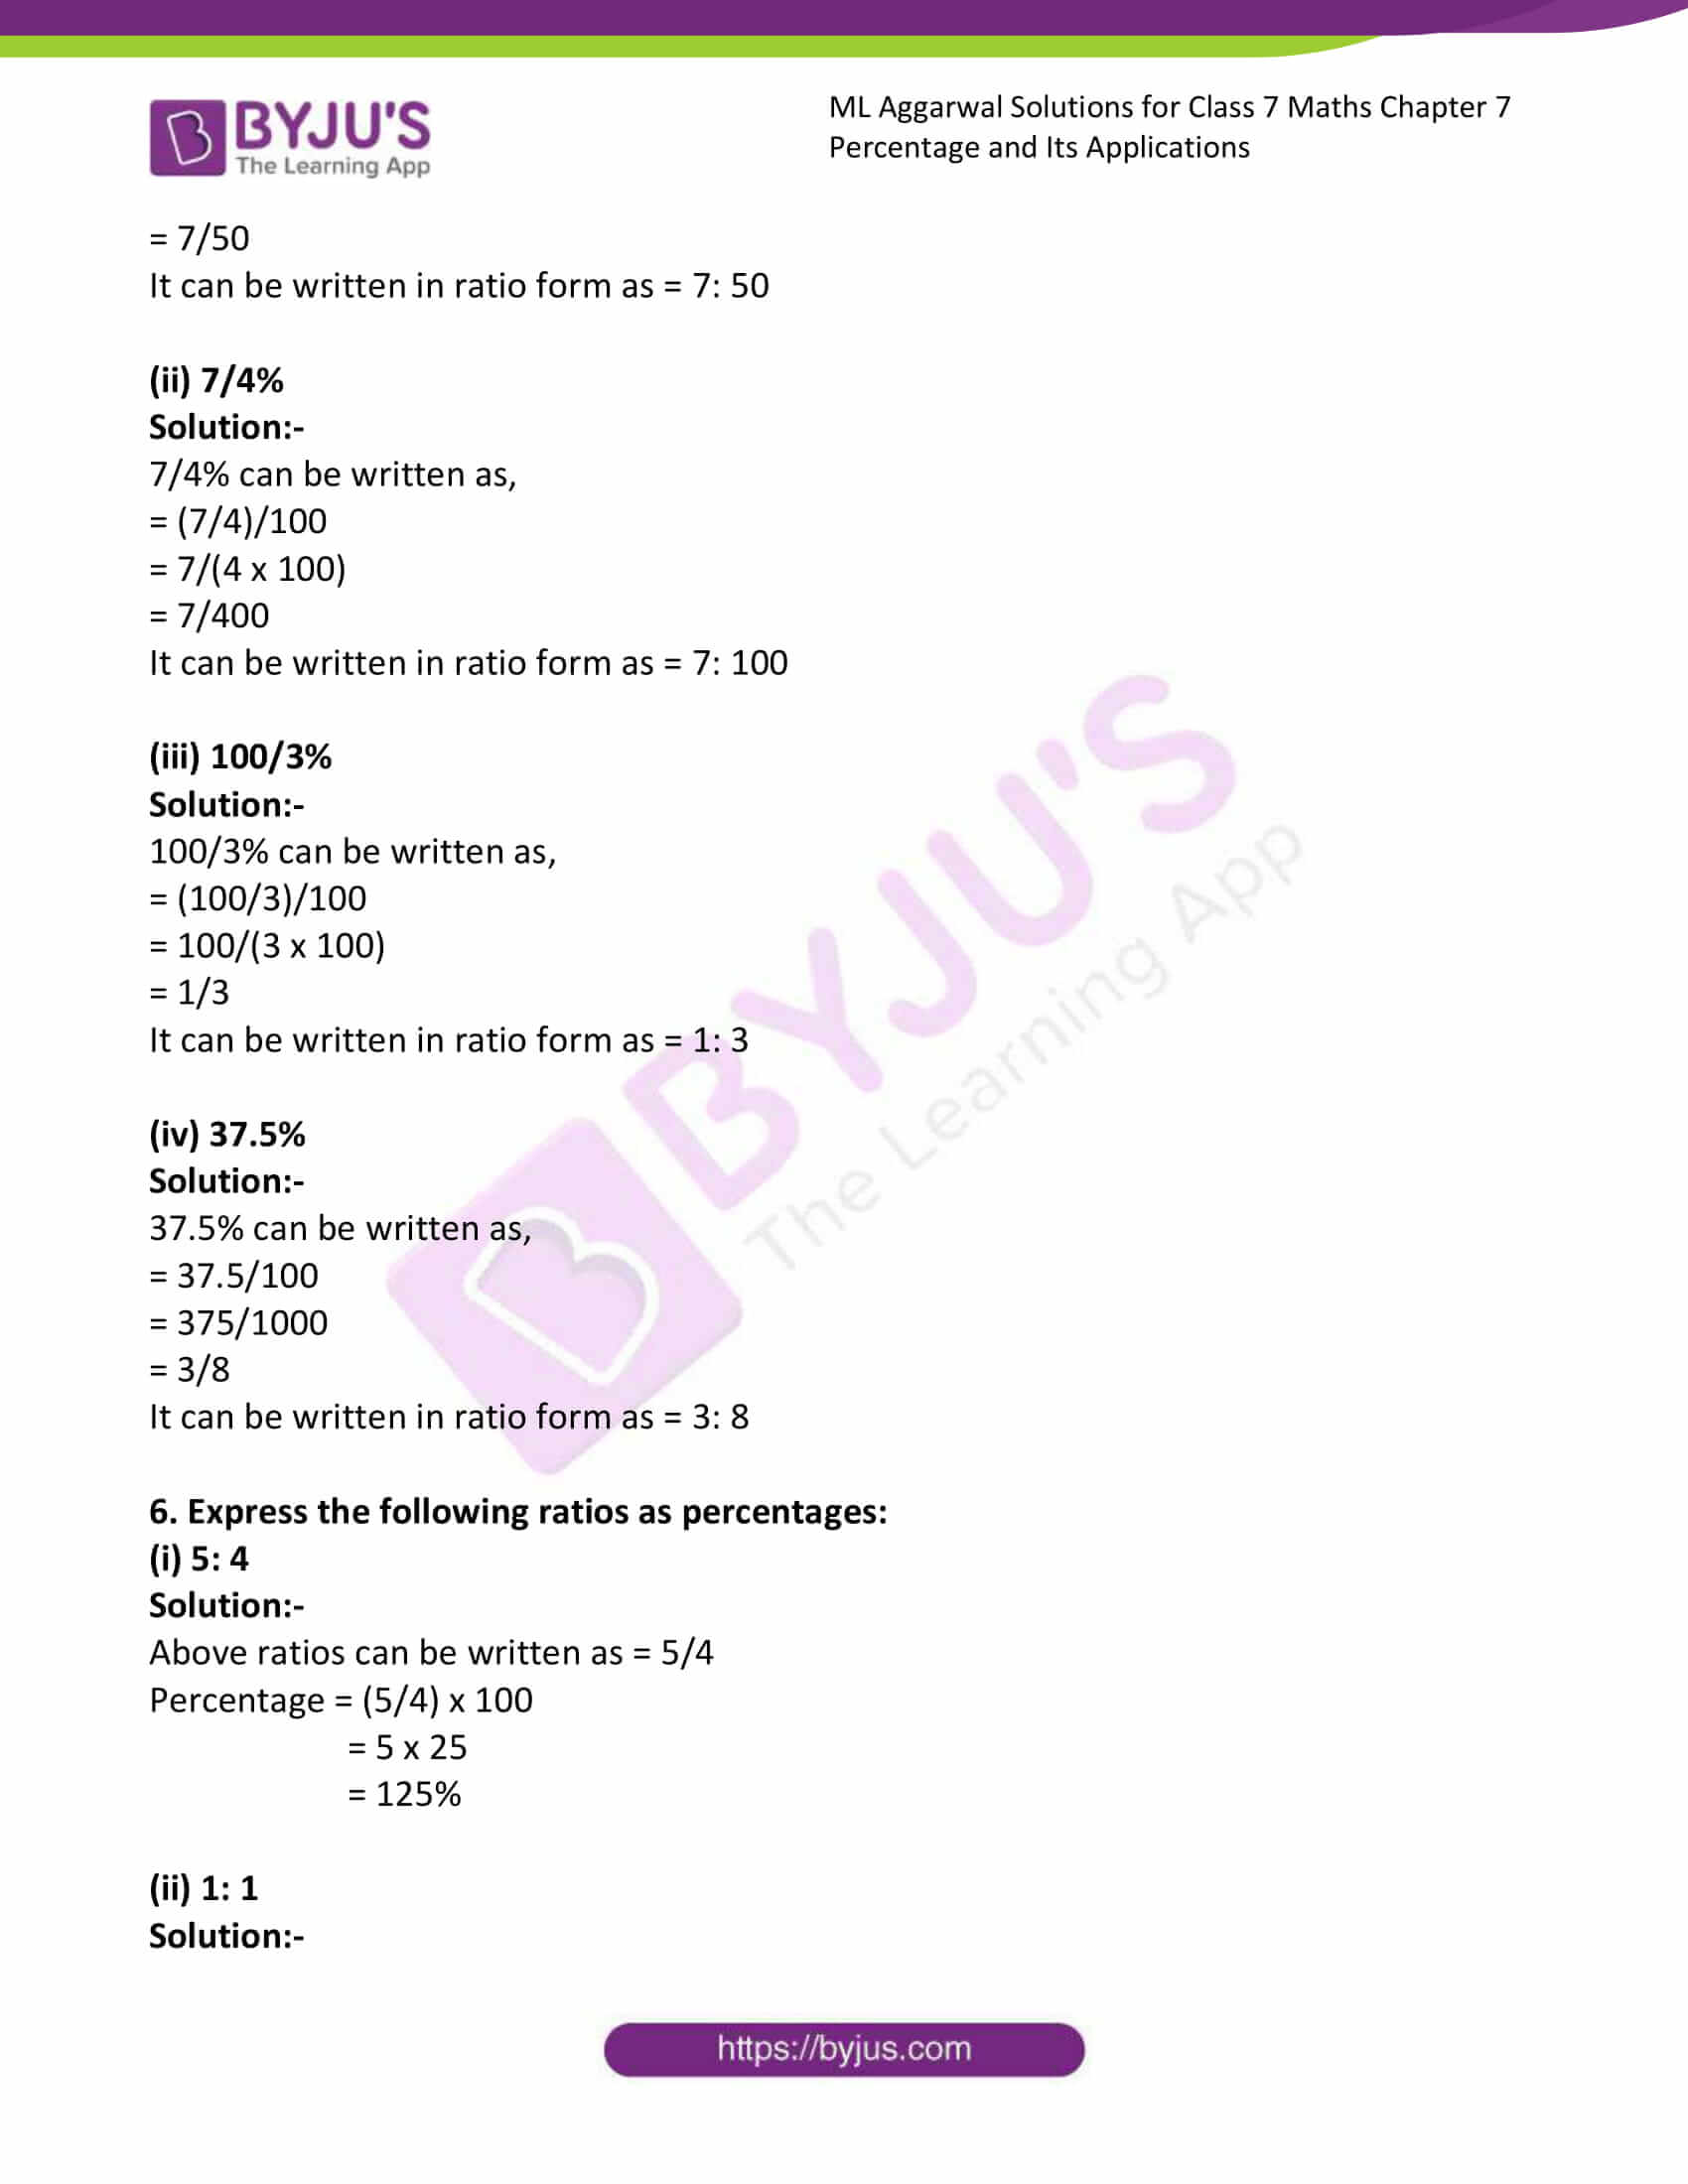 ml aggarwal solutions for class 7 maths chapter 7 6